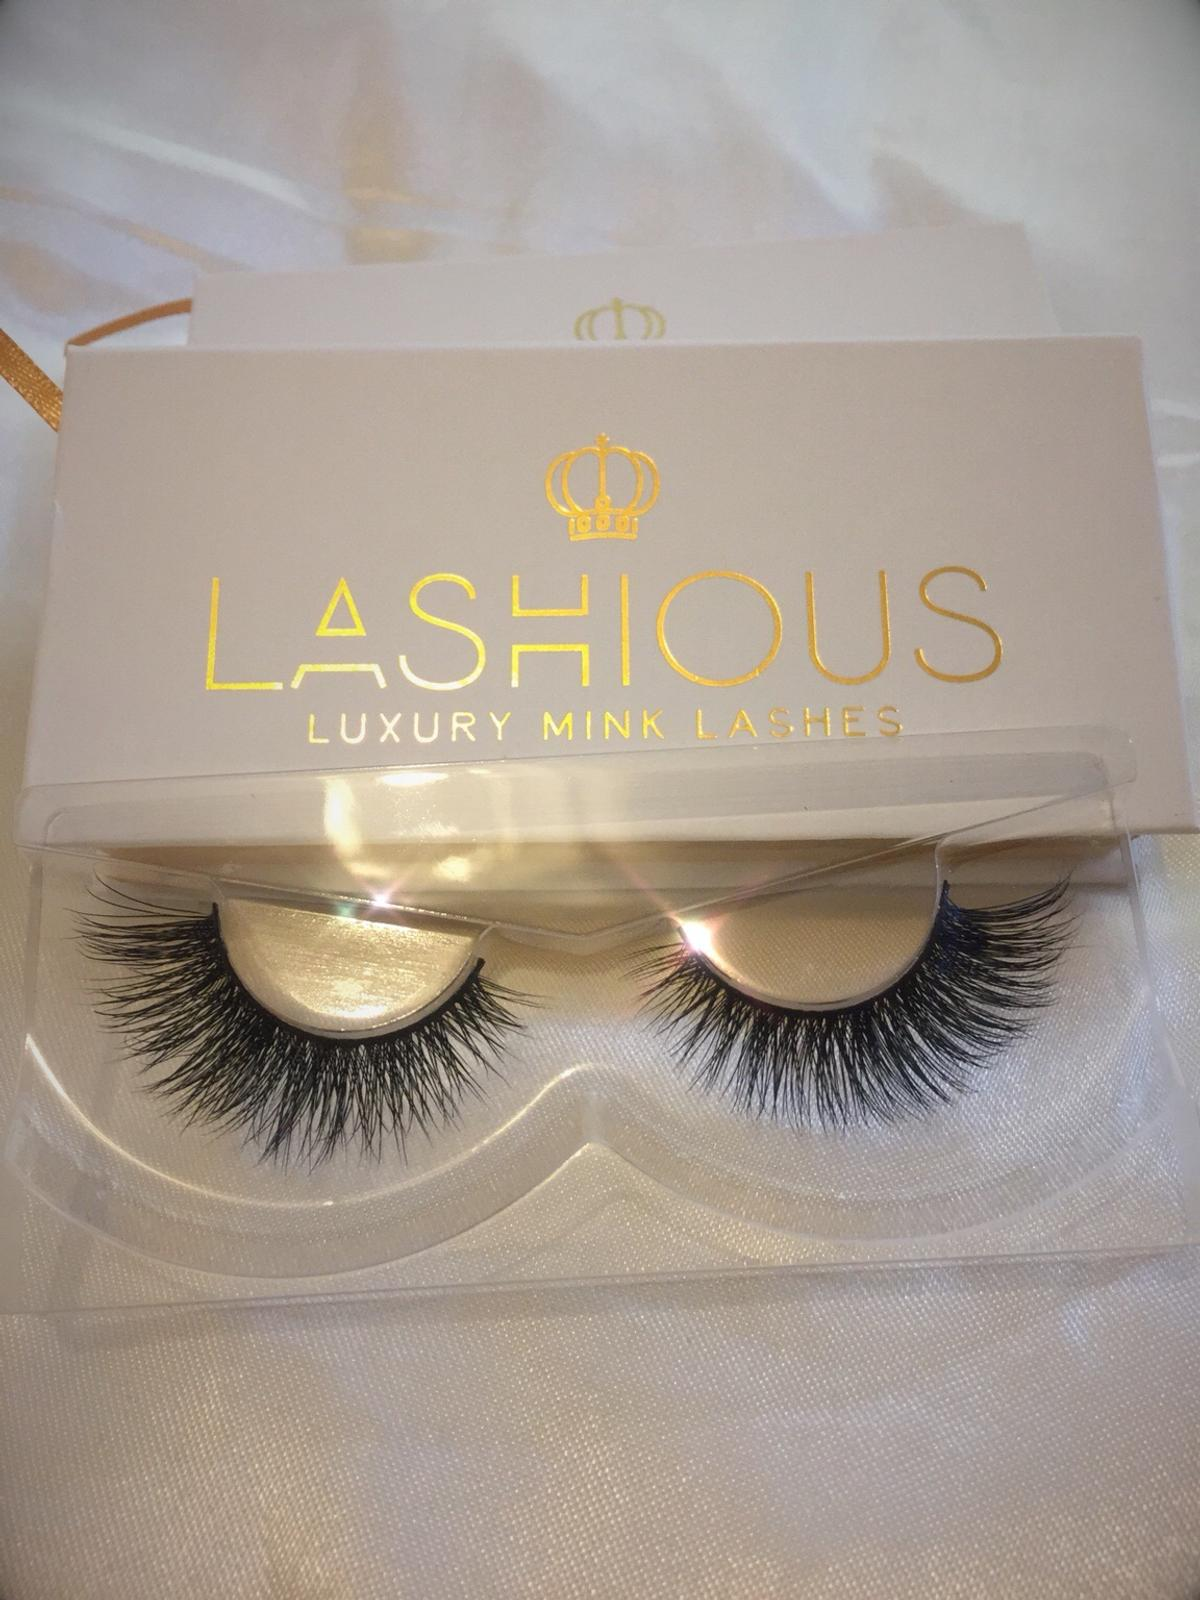 7291566a9dd ✨ LUXURY MINK LASHES ✨ in RG31 Purley on Thames for £9.99 for sale ...